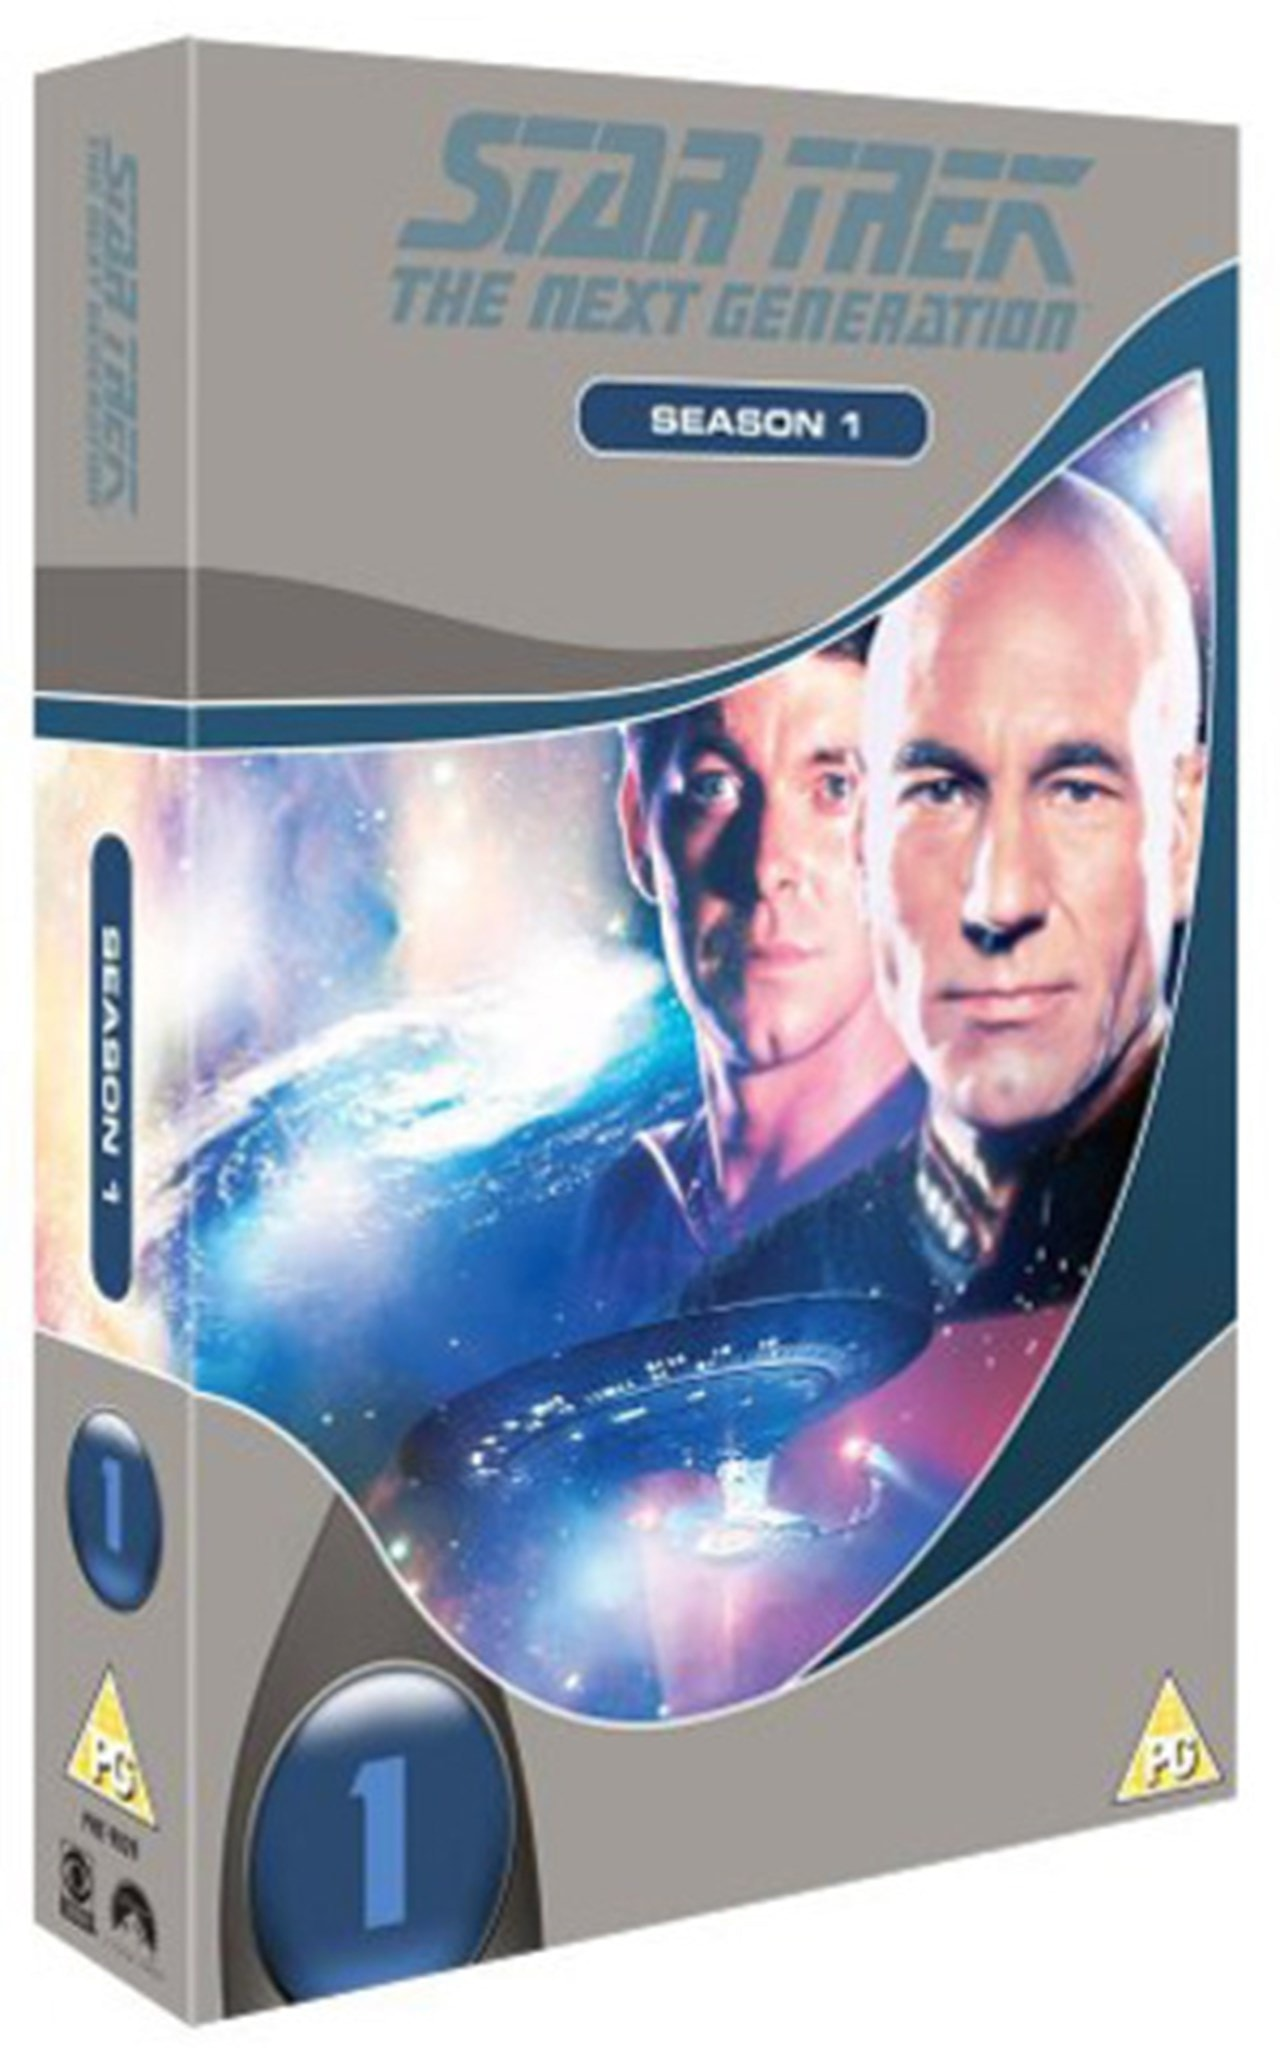 Star Trek the Next Generation: The Complete Season 1 - 1